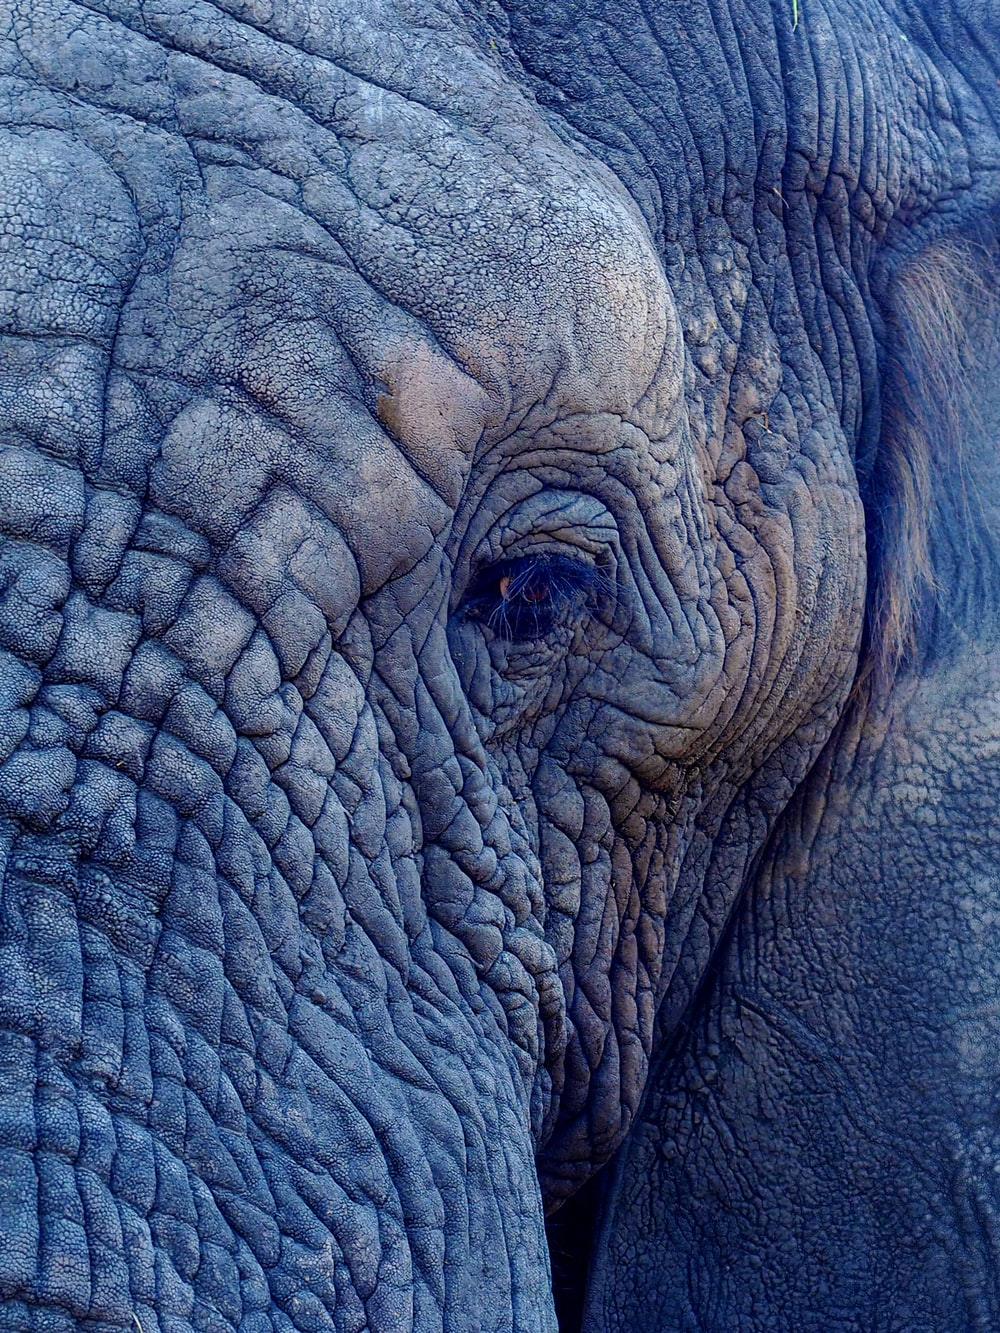 macro photography of elephant's face